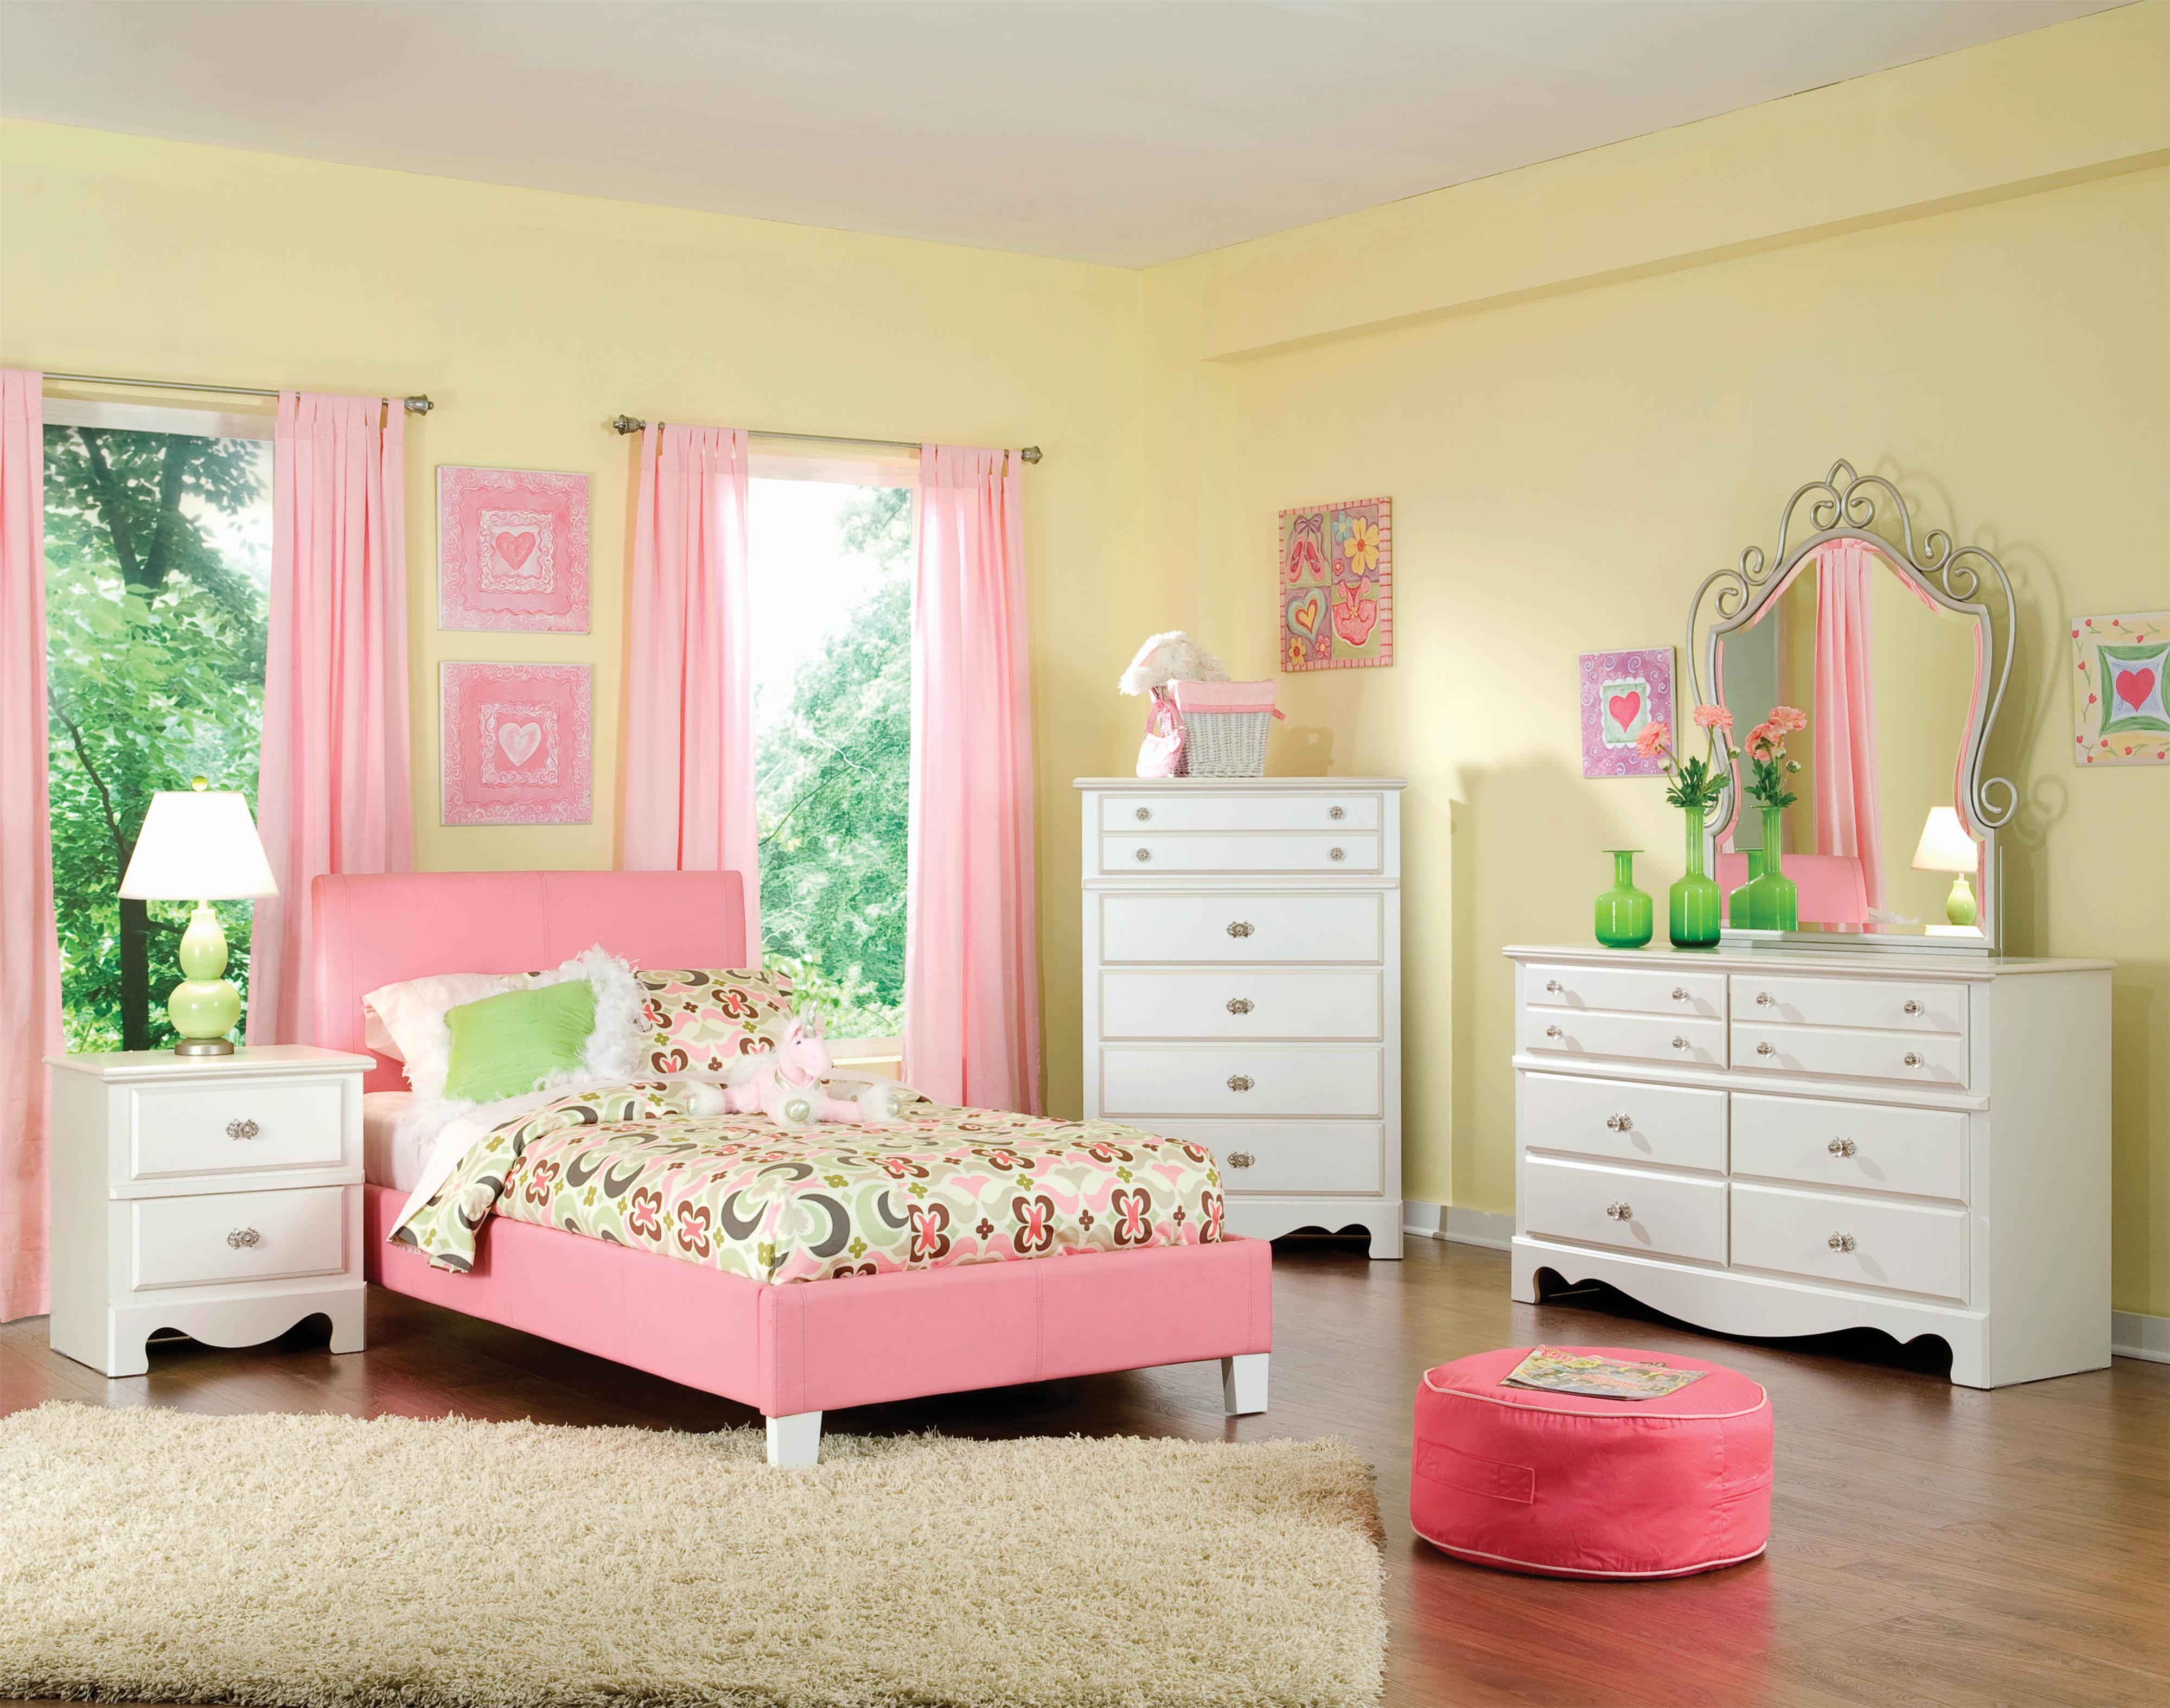 Standard Furniture Fantasia Full Bedroom Group - Item Number: 60750 F Bedroom Group 3